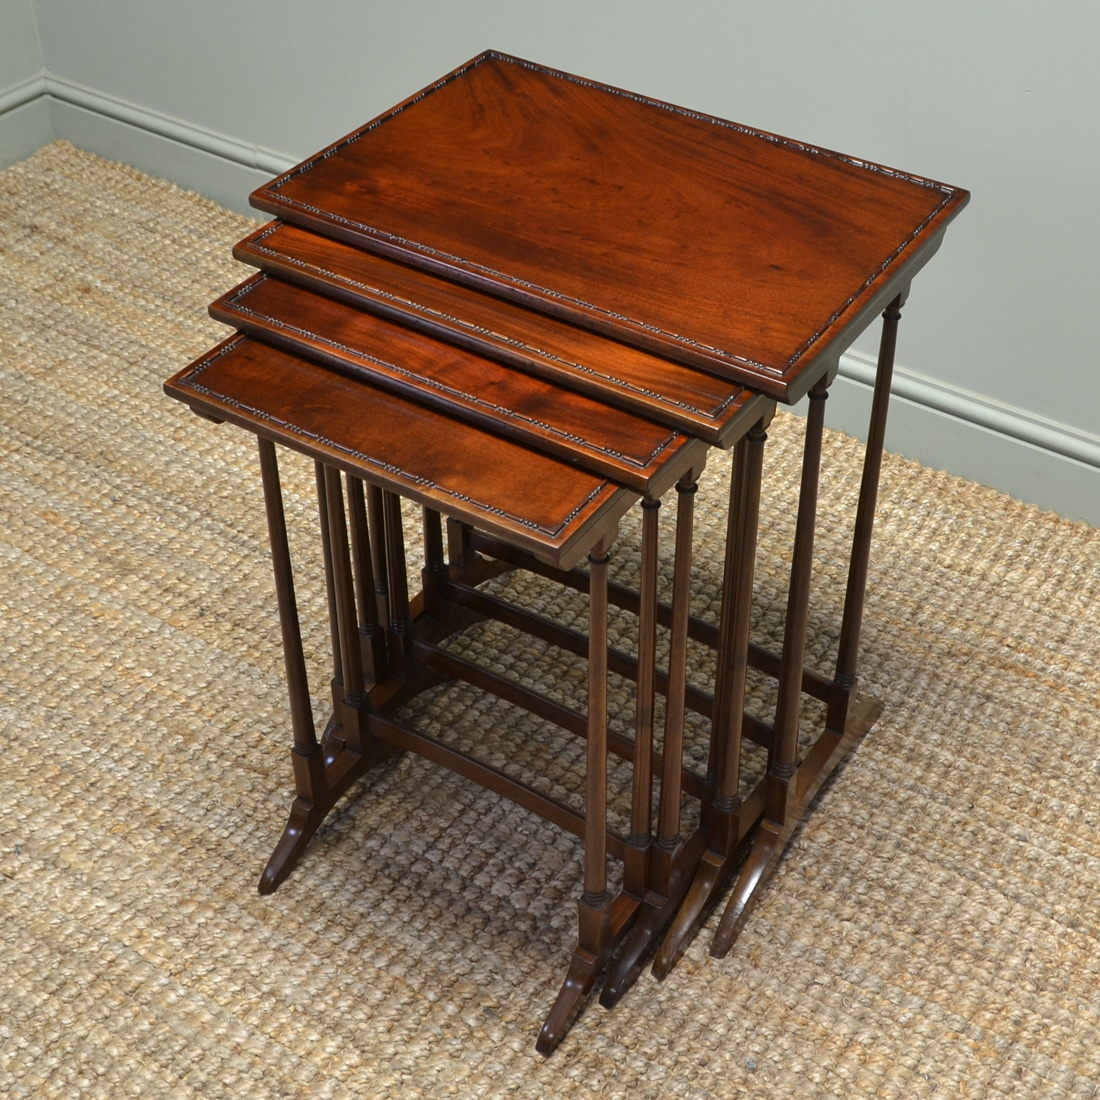 Spectacular Edwardian Mahogany Antique Nest of Four Tables by S&H Jewell of London